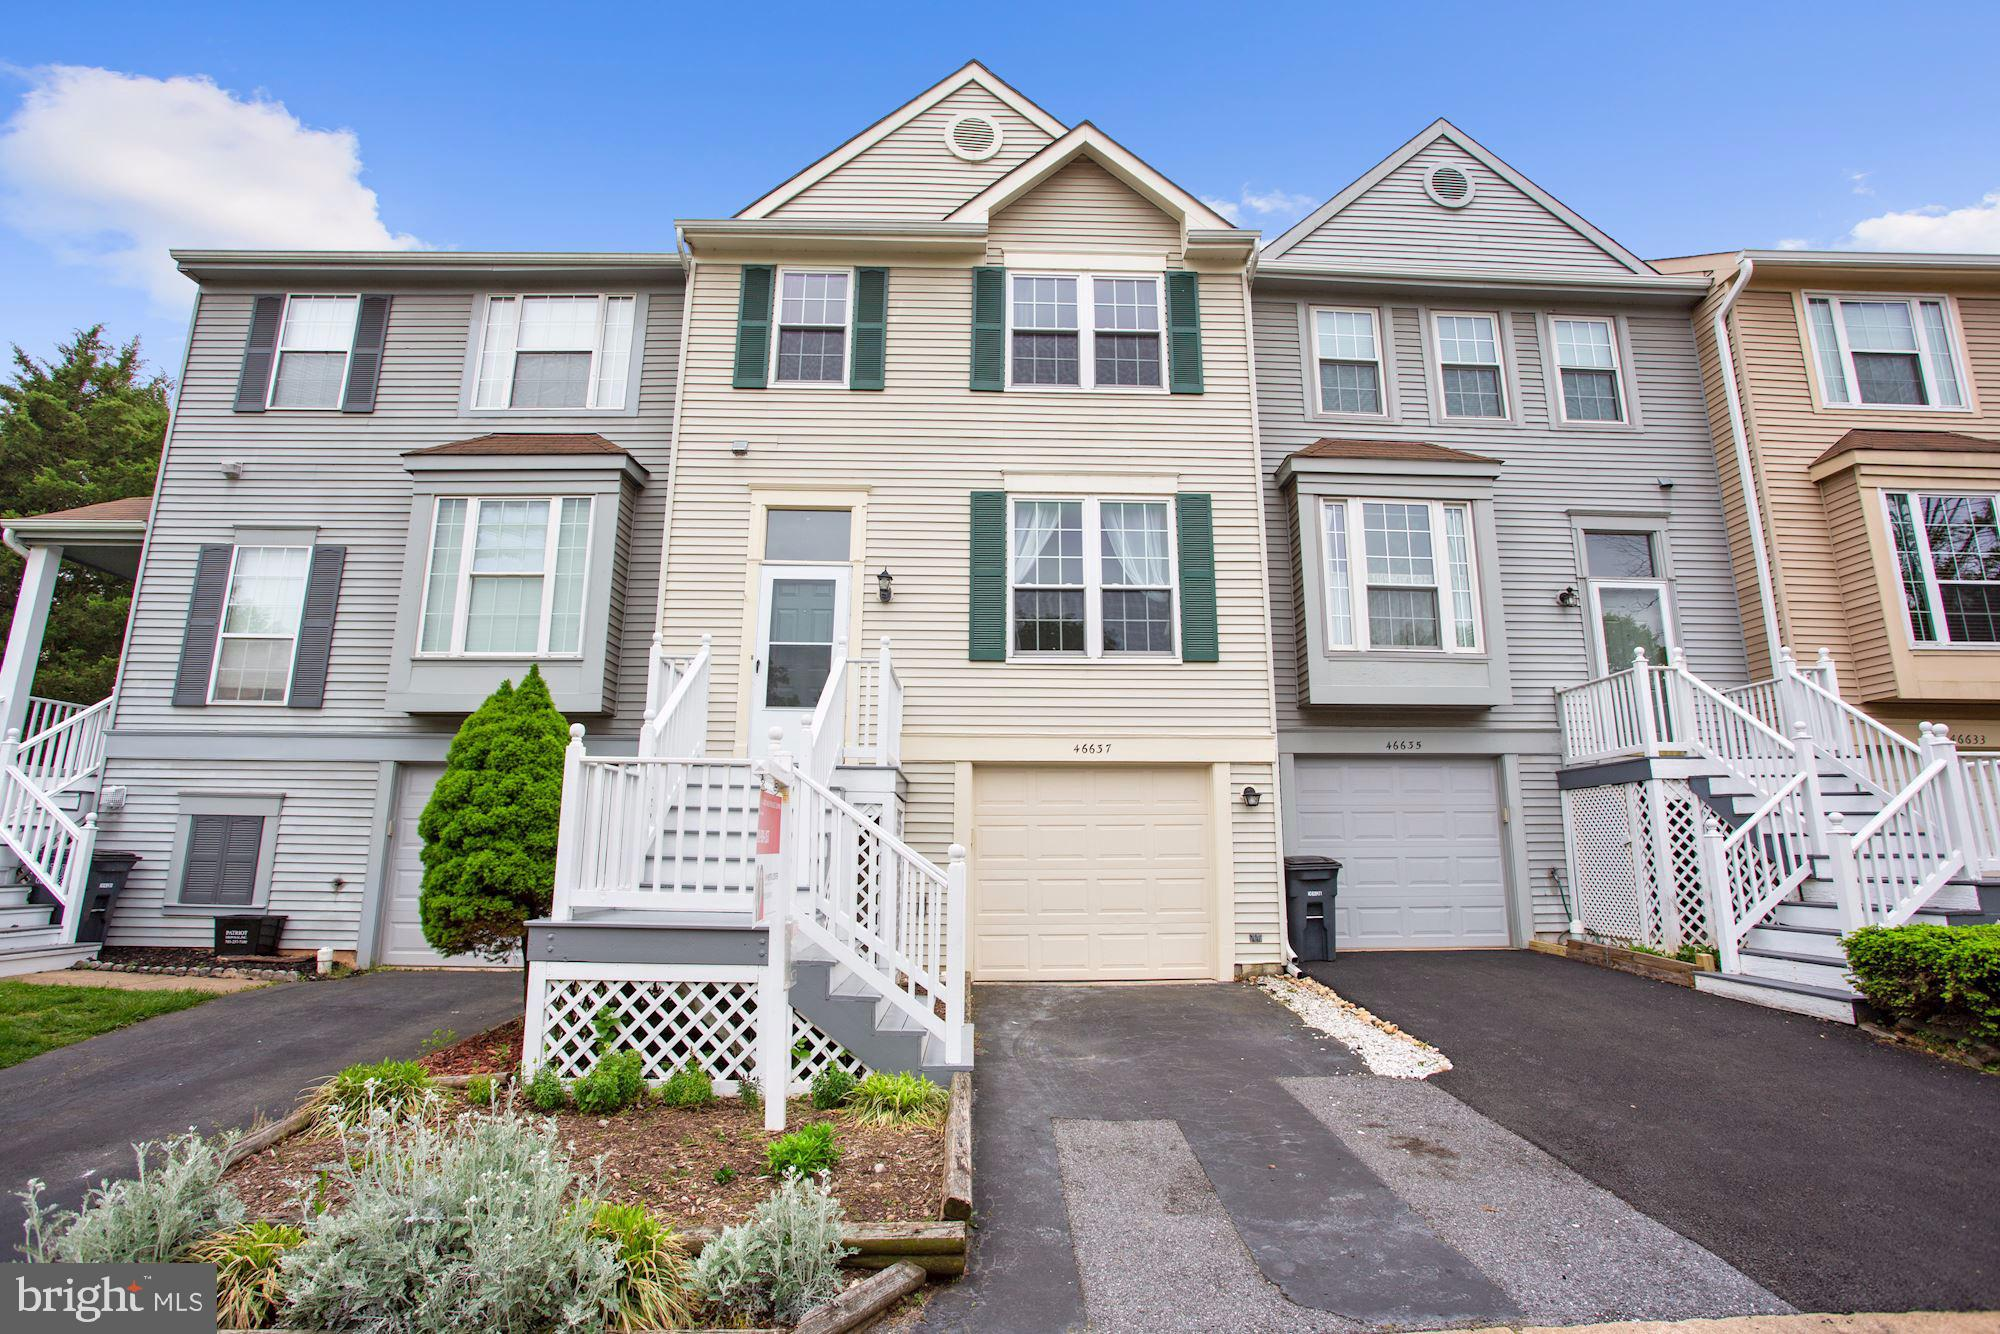 Welcome home! Spacious 3 bedroom, 2.5 bathroom townhome boasts gleaming hardwood flooring and open-c